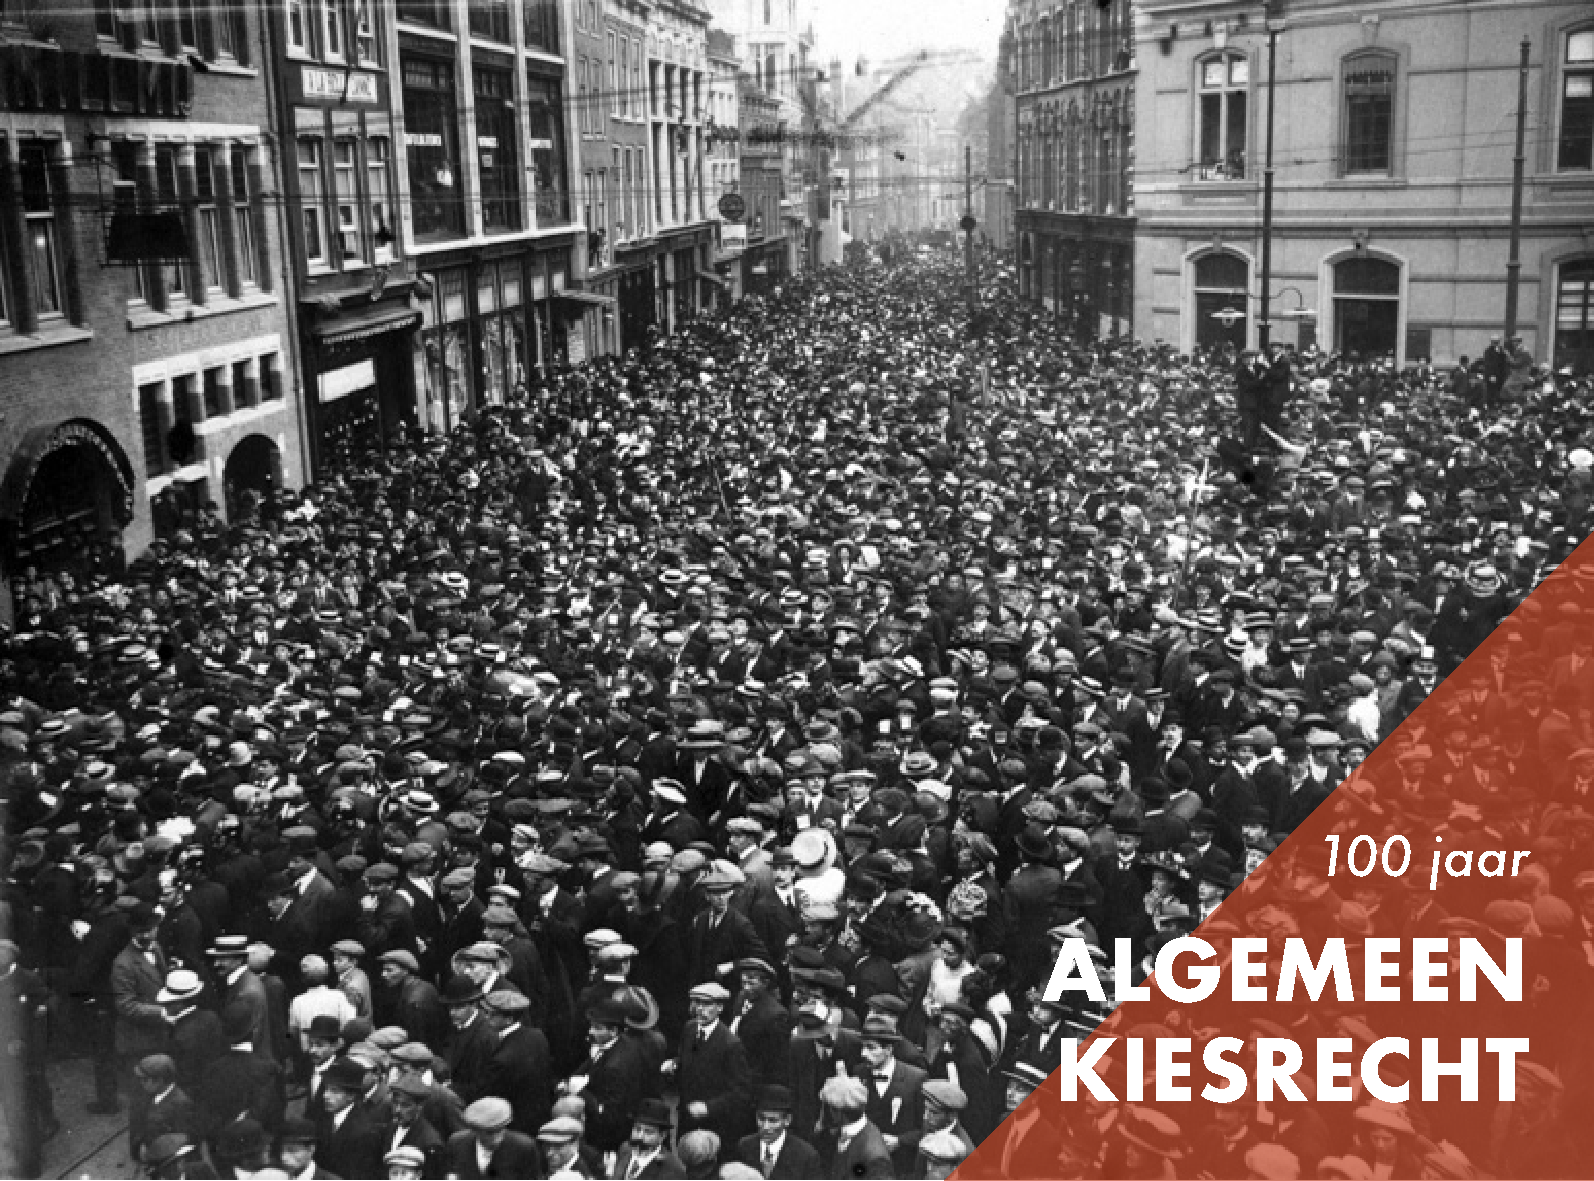 Een overzicht van de aanloop naar het algemeen kiesrecht, de strijd voor vrouwenkiesrecht (wereldwijd) en de eerste vrouwelijke stemmers.   One hundred years of universal suffrage in The Netherlands: a survey/outline of the build-up to universal suffrage, women's suffrage (world-wide) and the first female voters.    See more